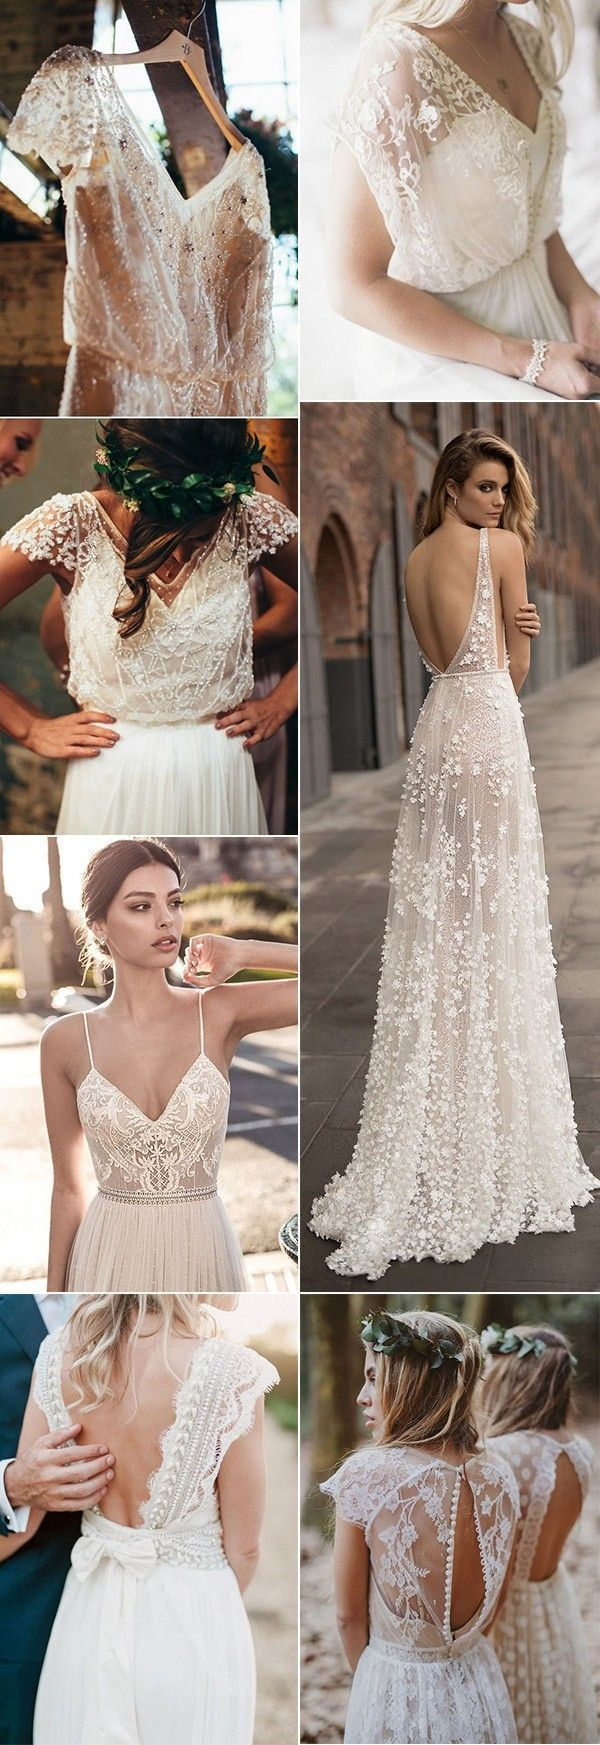 Top 18 Boho Wedding Dresses for 2018 Trends is part of Lace weddings - Boho wedding dresses blur the line between traditional, and defined by embodying the free spirit of the Hippies from the 1960's and 1970's  The primary ingredient to all bohemian wedding dresses is comfort  Expect to see a lot of flowing layered fabrics, ethnic inspiredtextures, and floral crowns in these jawdropping boho weddings gowns